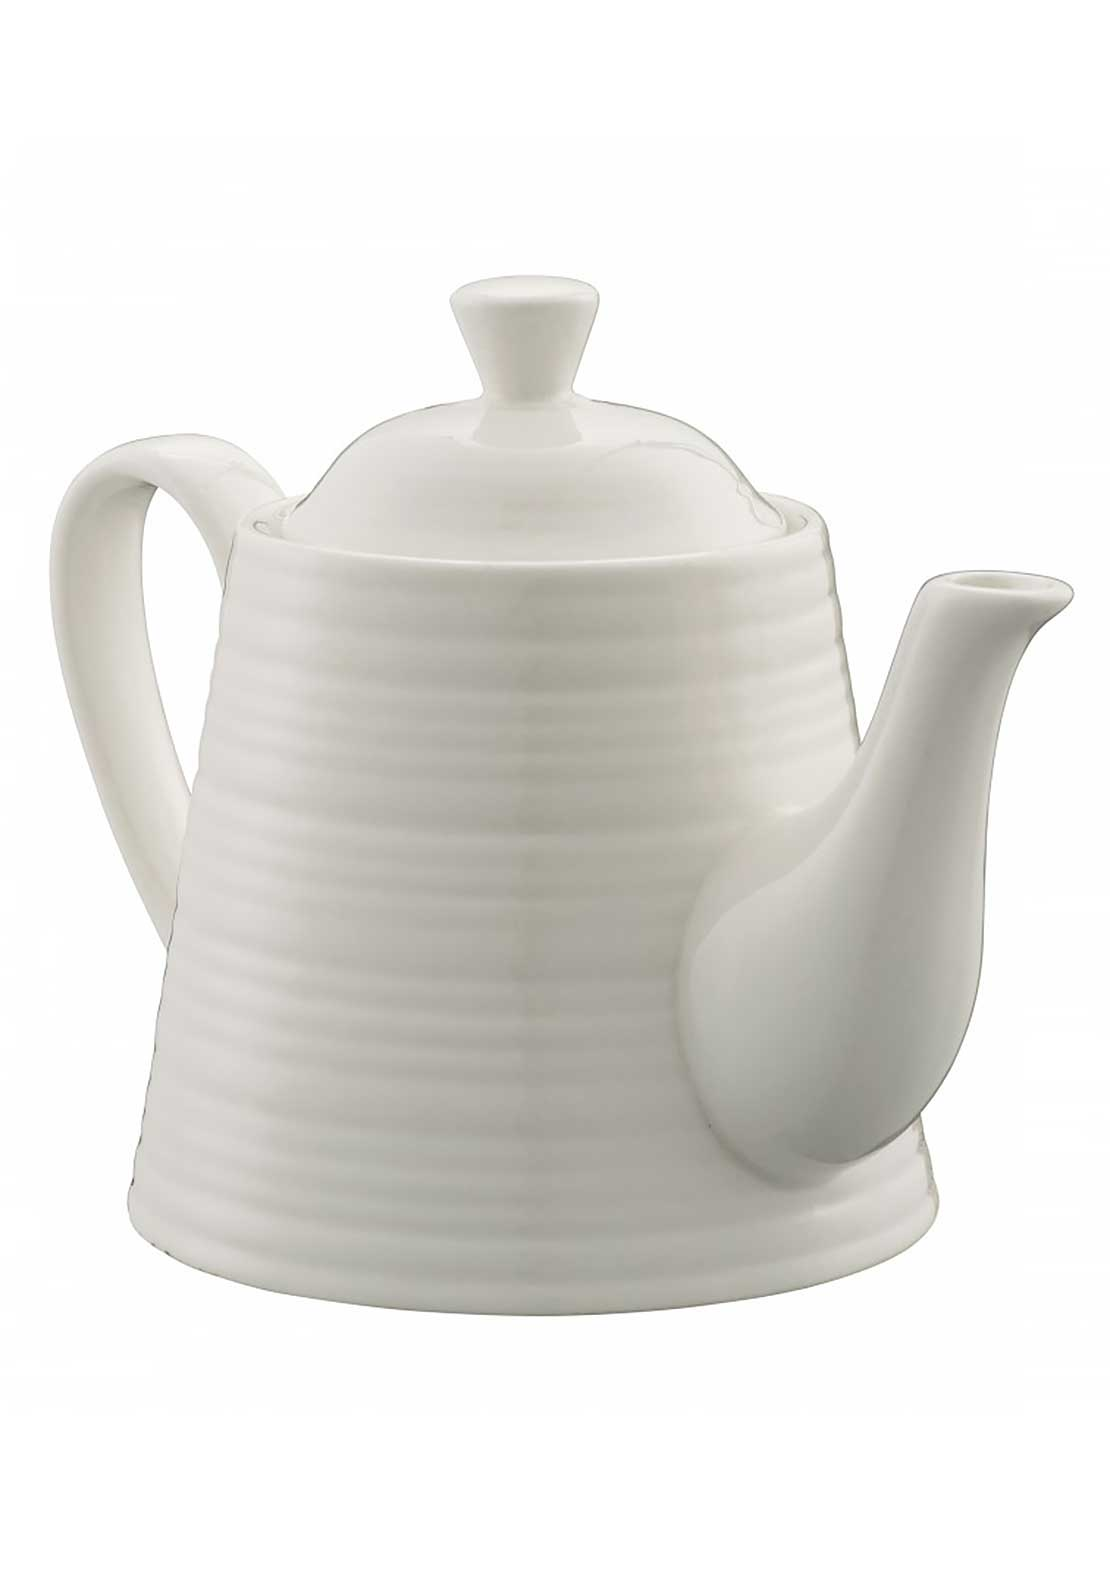 Belleek Living Casual Dining Ripple Tea for One Teapot